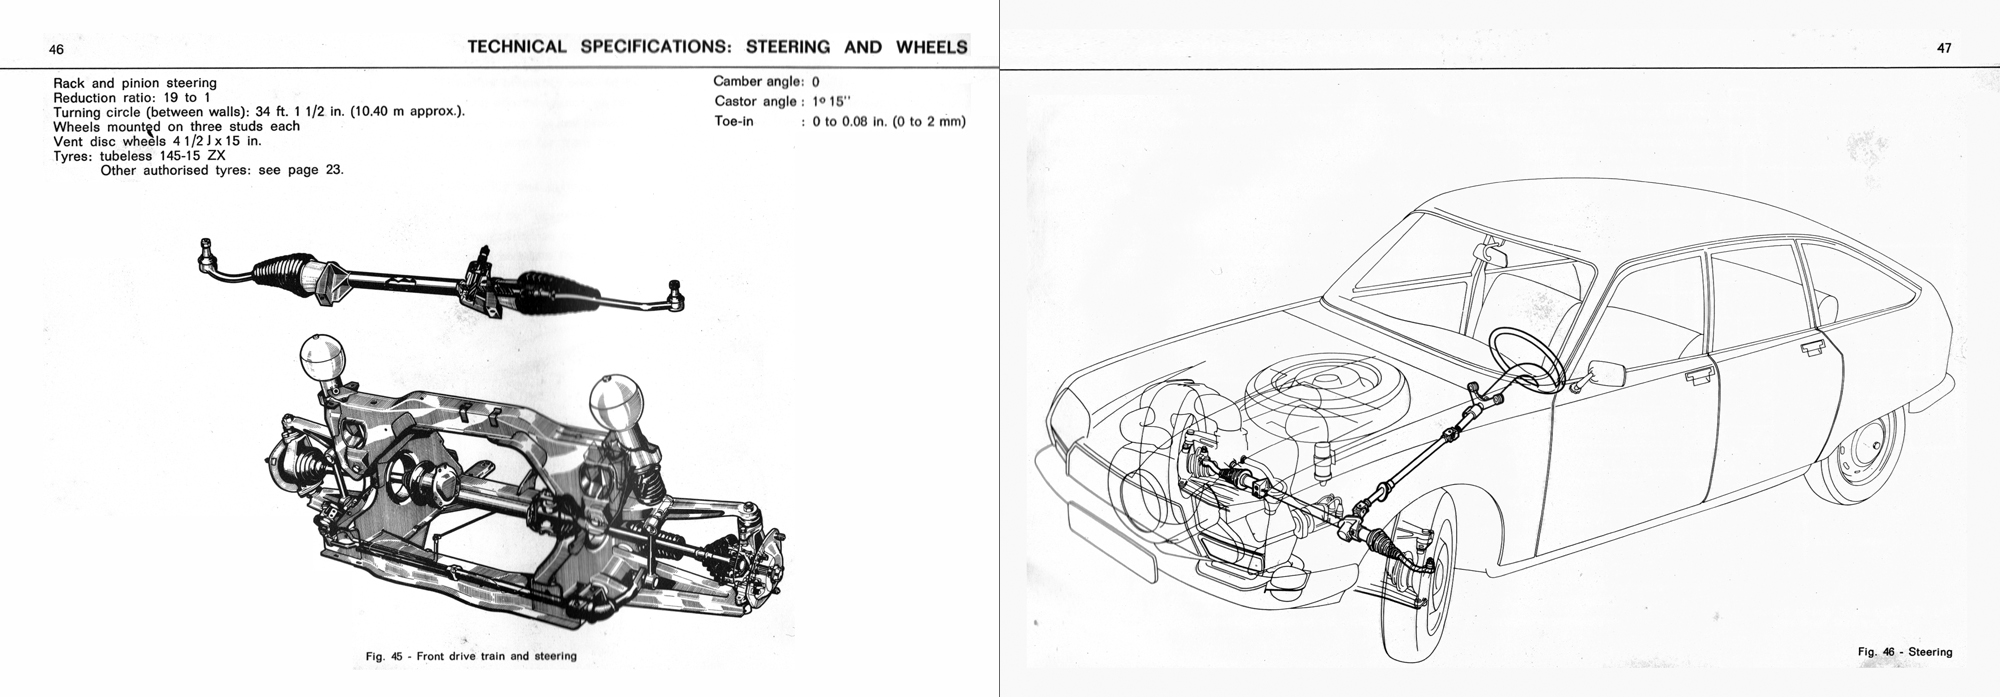 1973 Citroën GS owner's manual Page 2